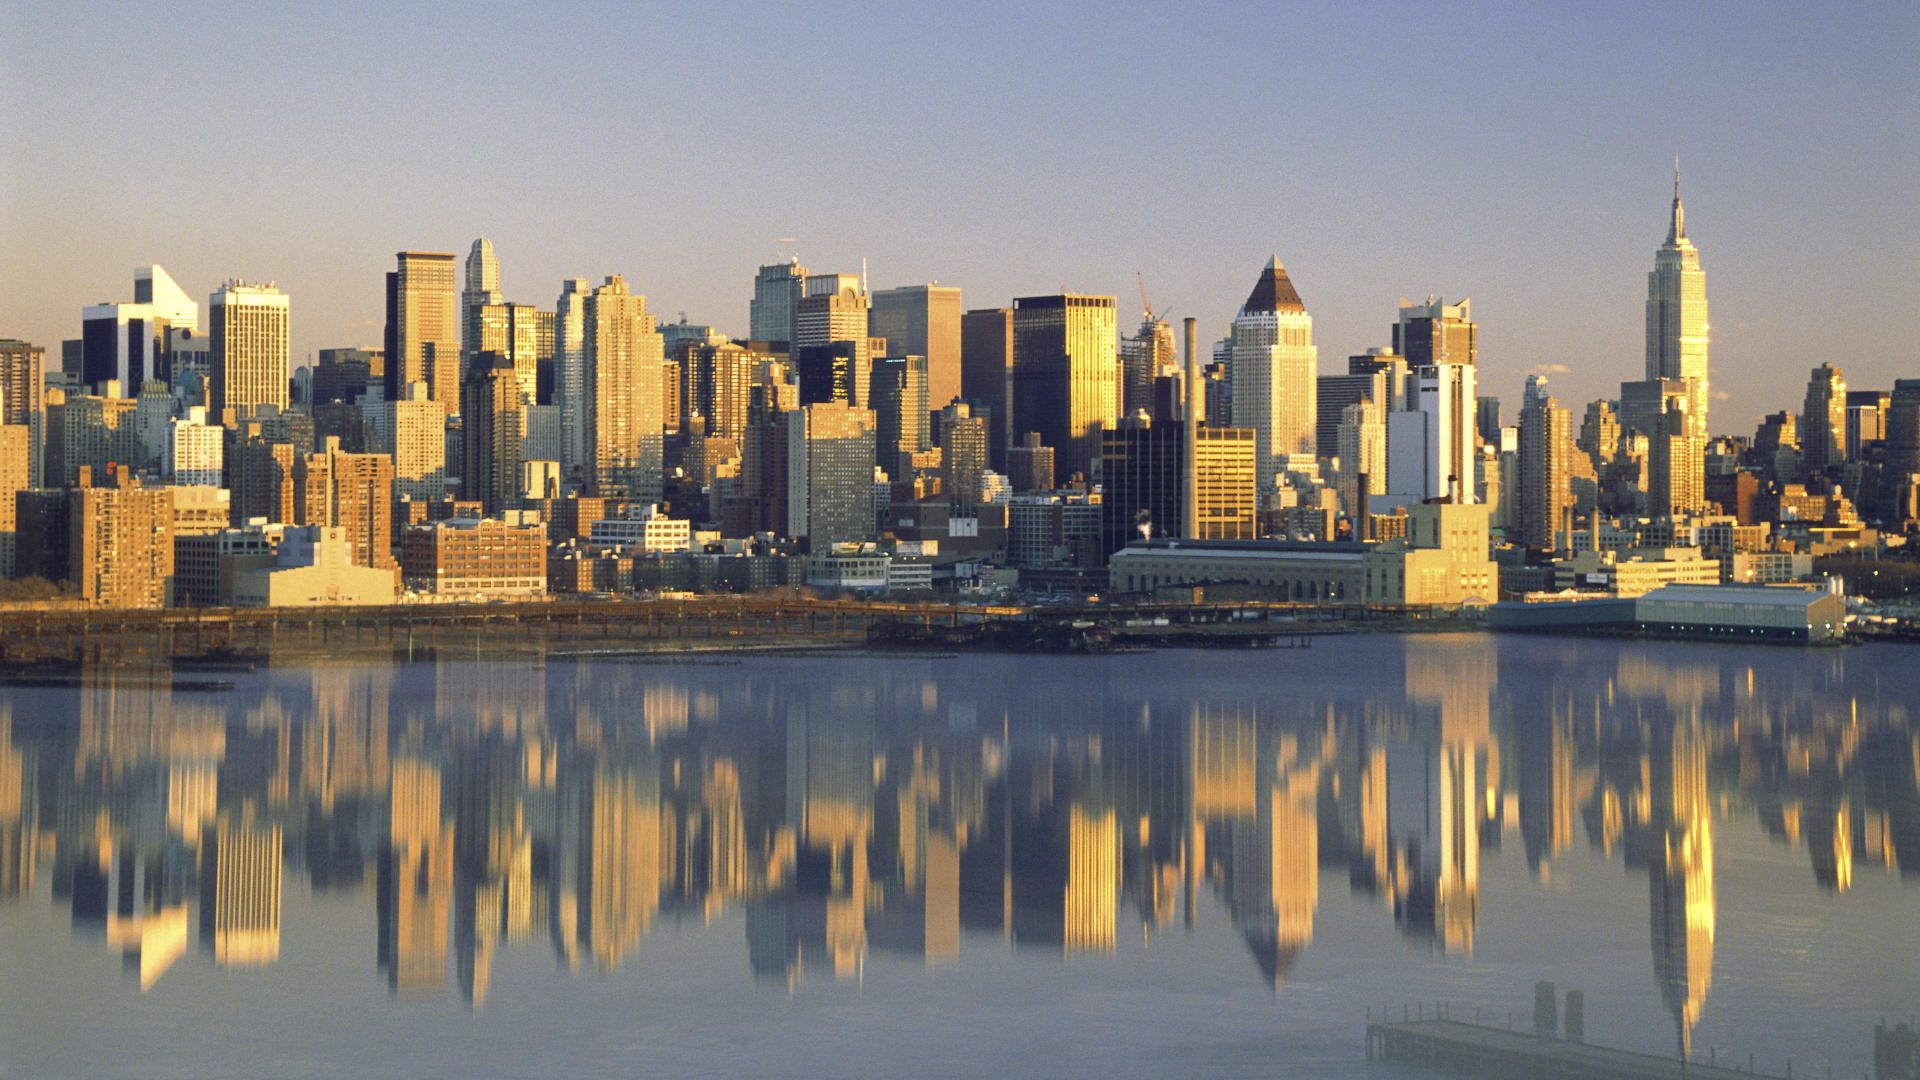 Buildings City New York City Reflected New York picture nr 34202 1920x1080